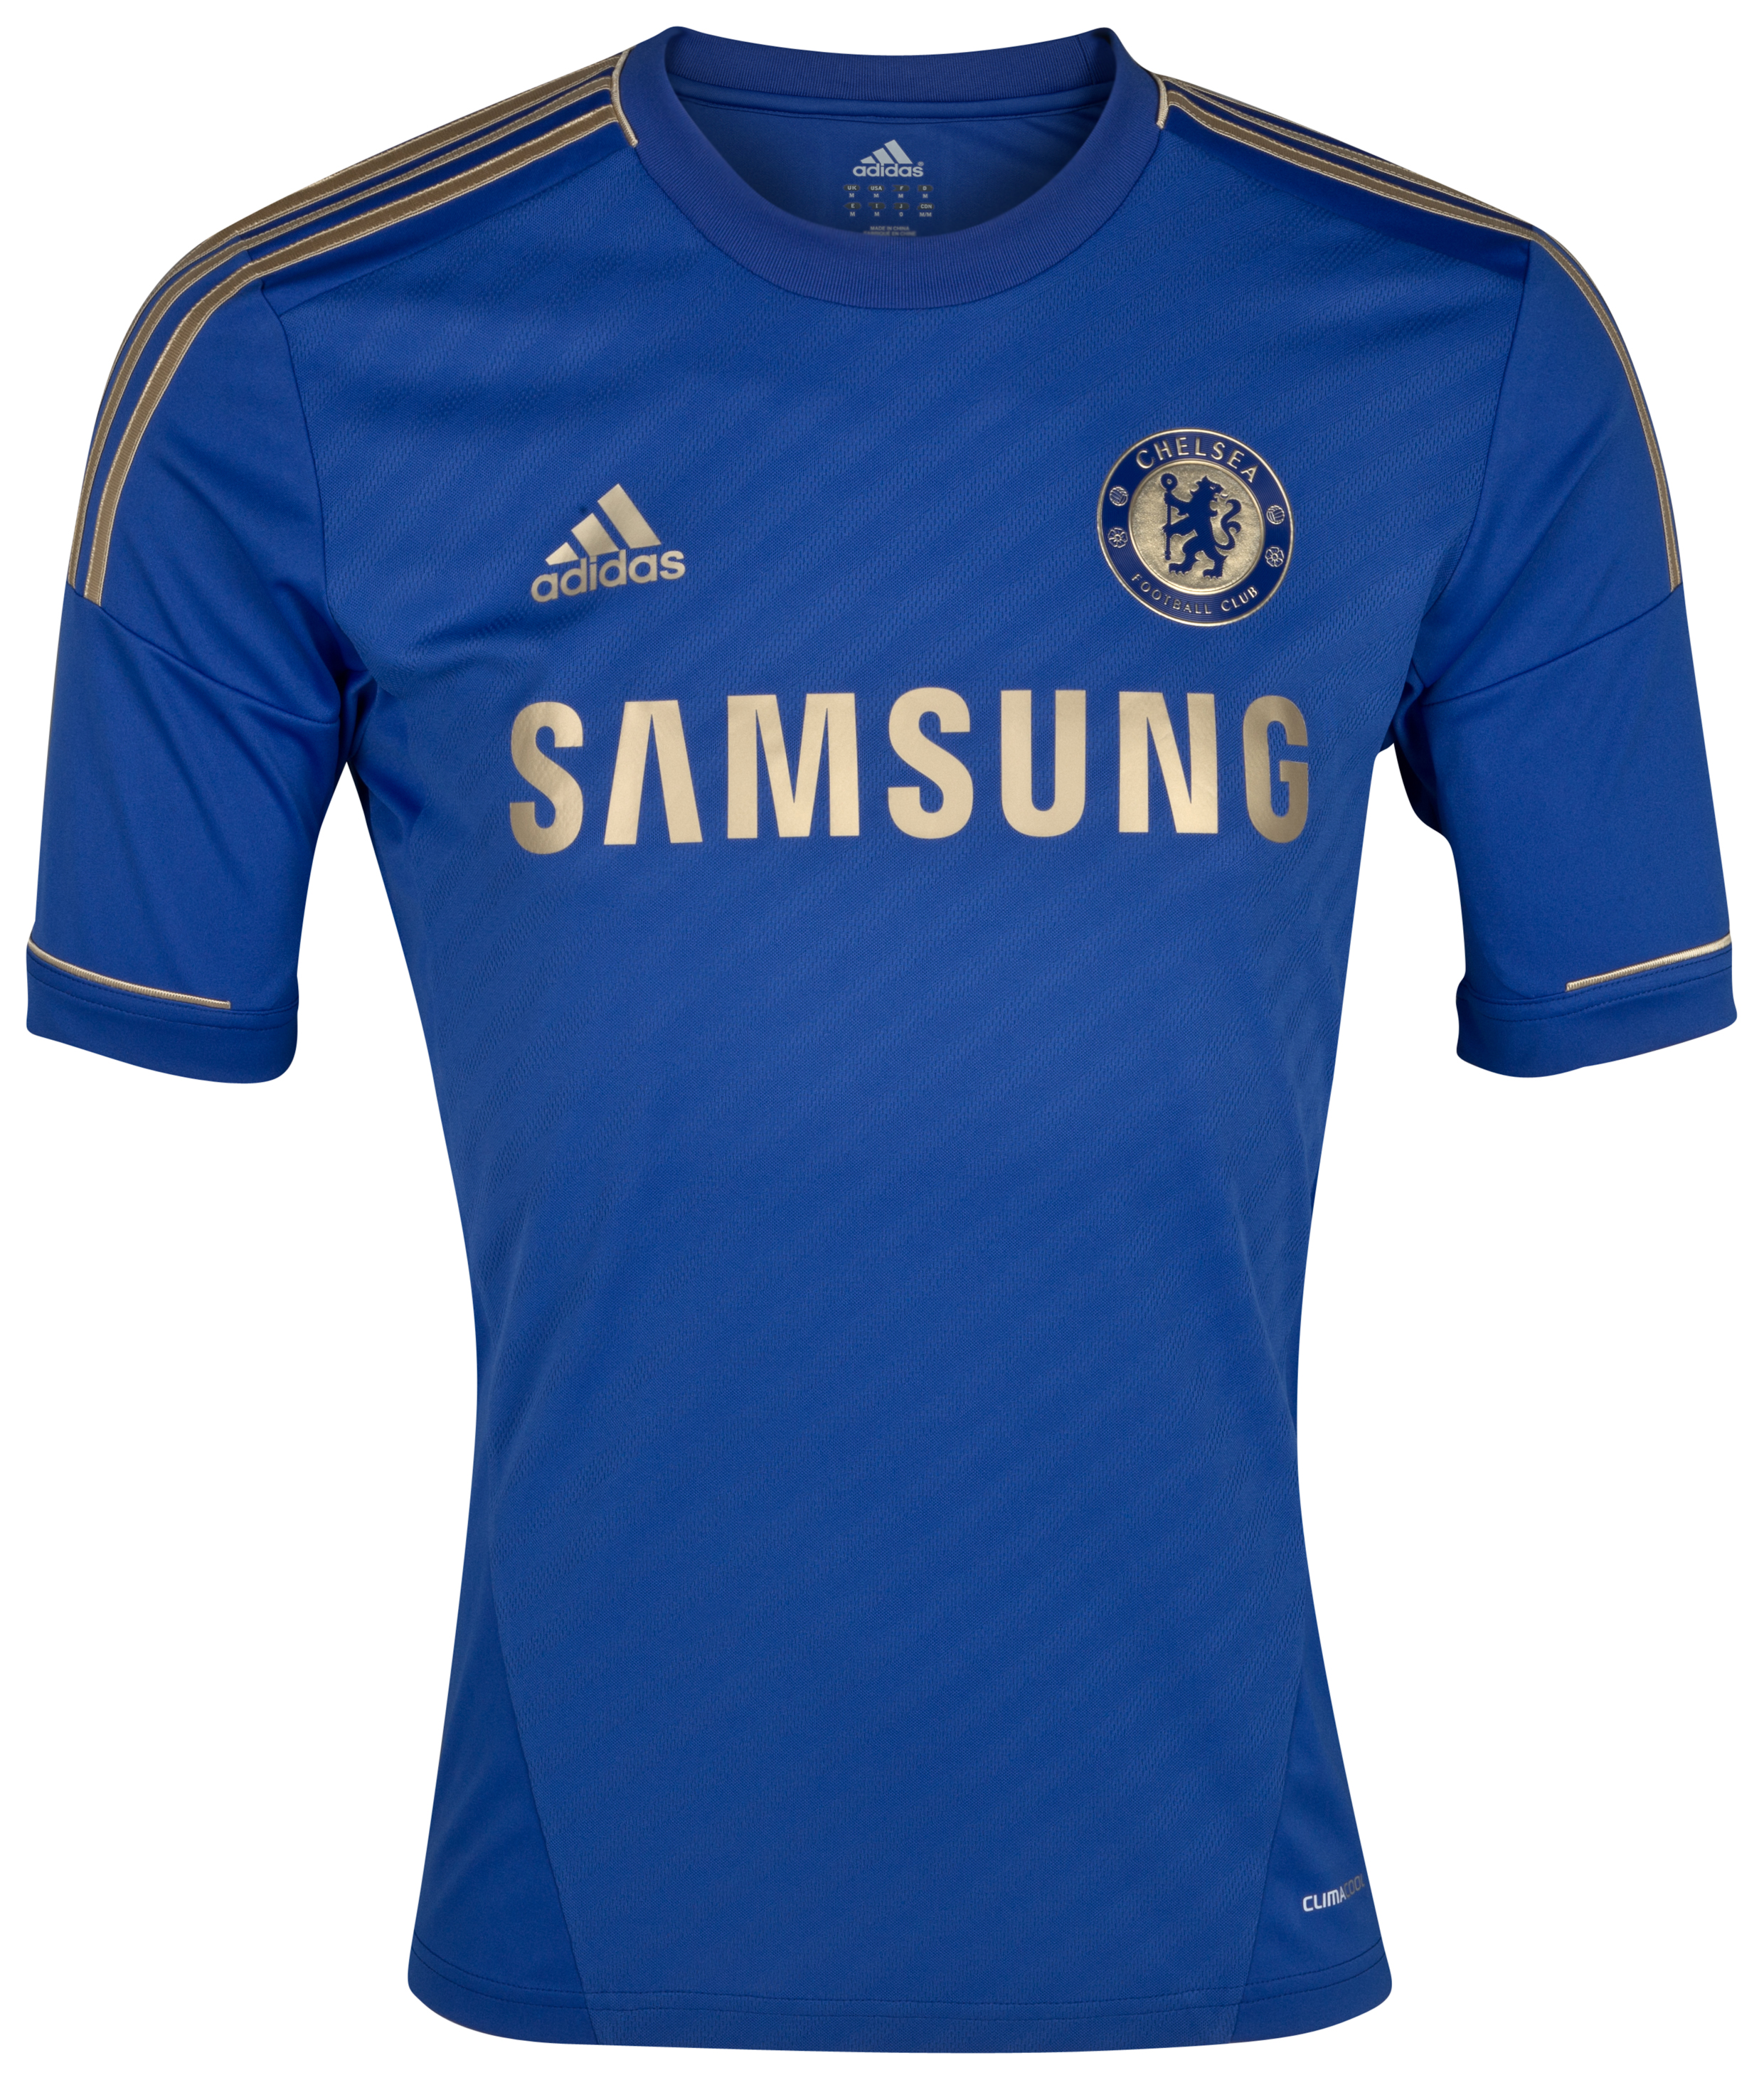 more photos 8731a 1ad92 The New 2012/2013 Chelsea Home Shirt | Sportslens